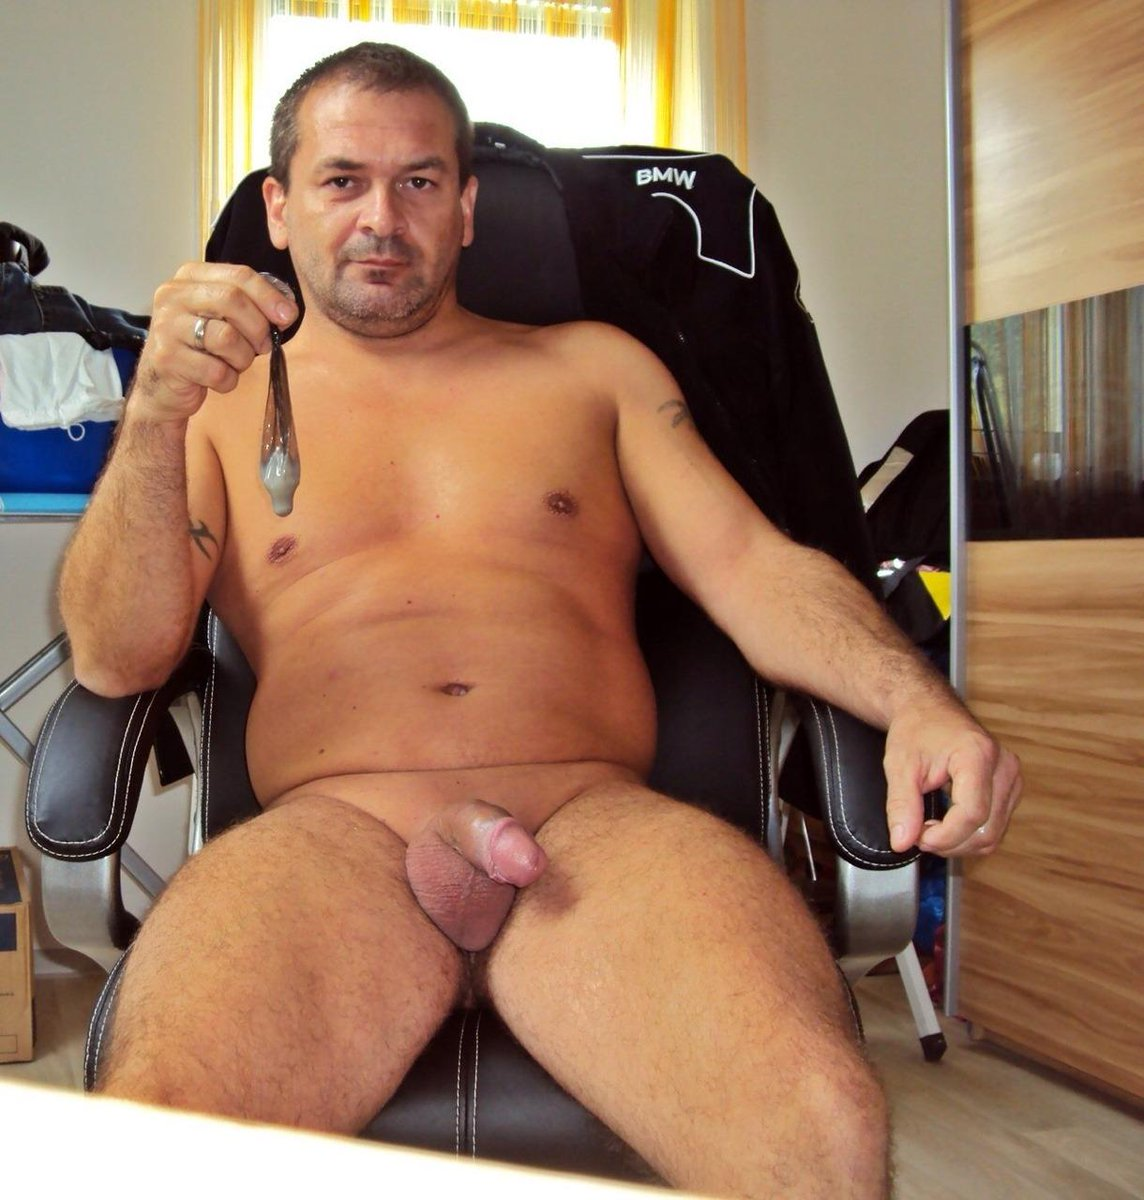 The absolute best of amateur daddy dick pt vi